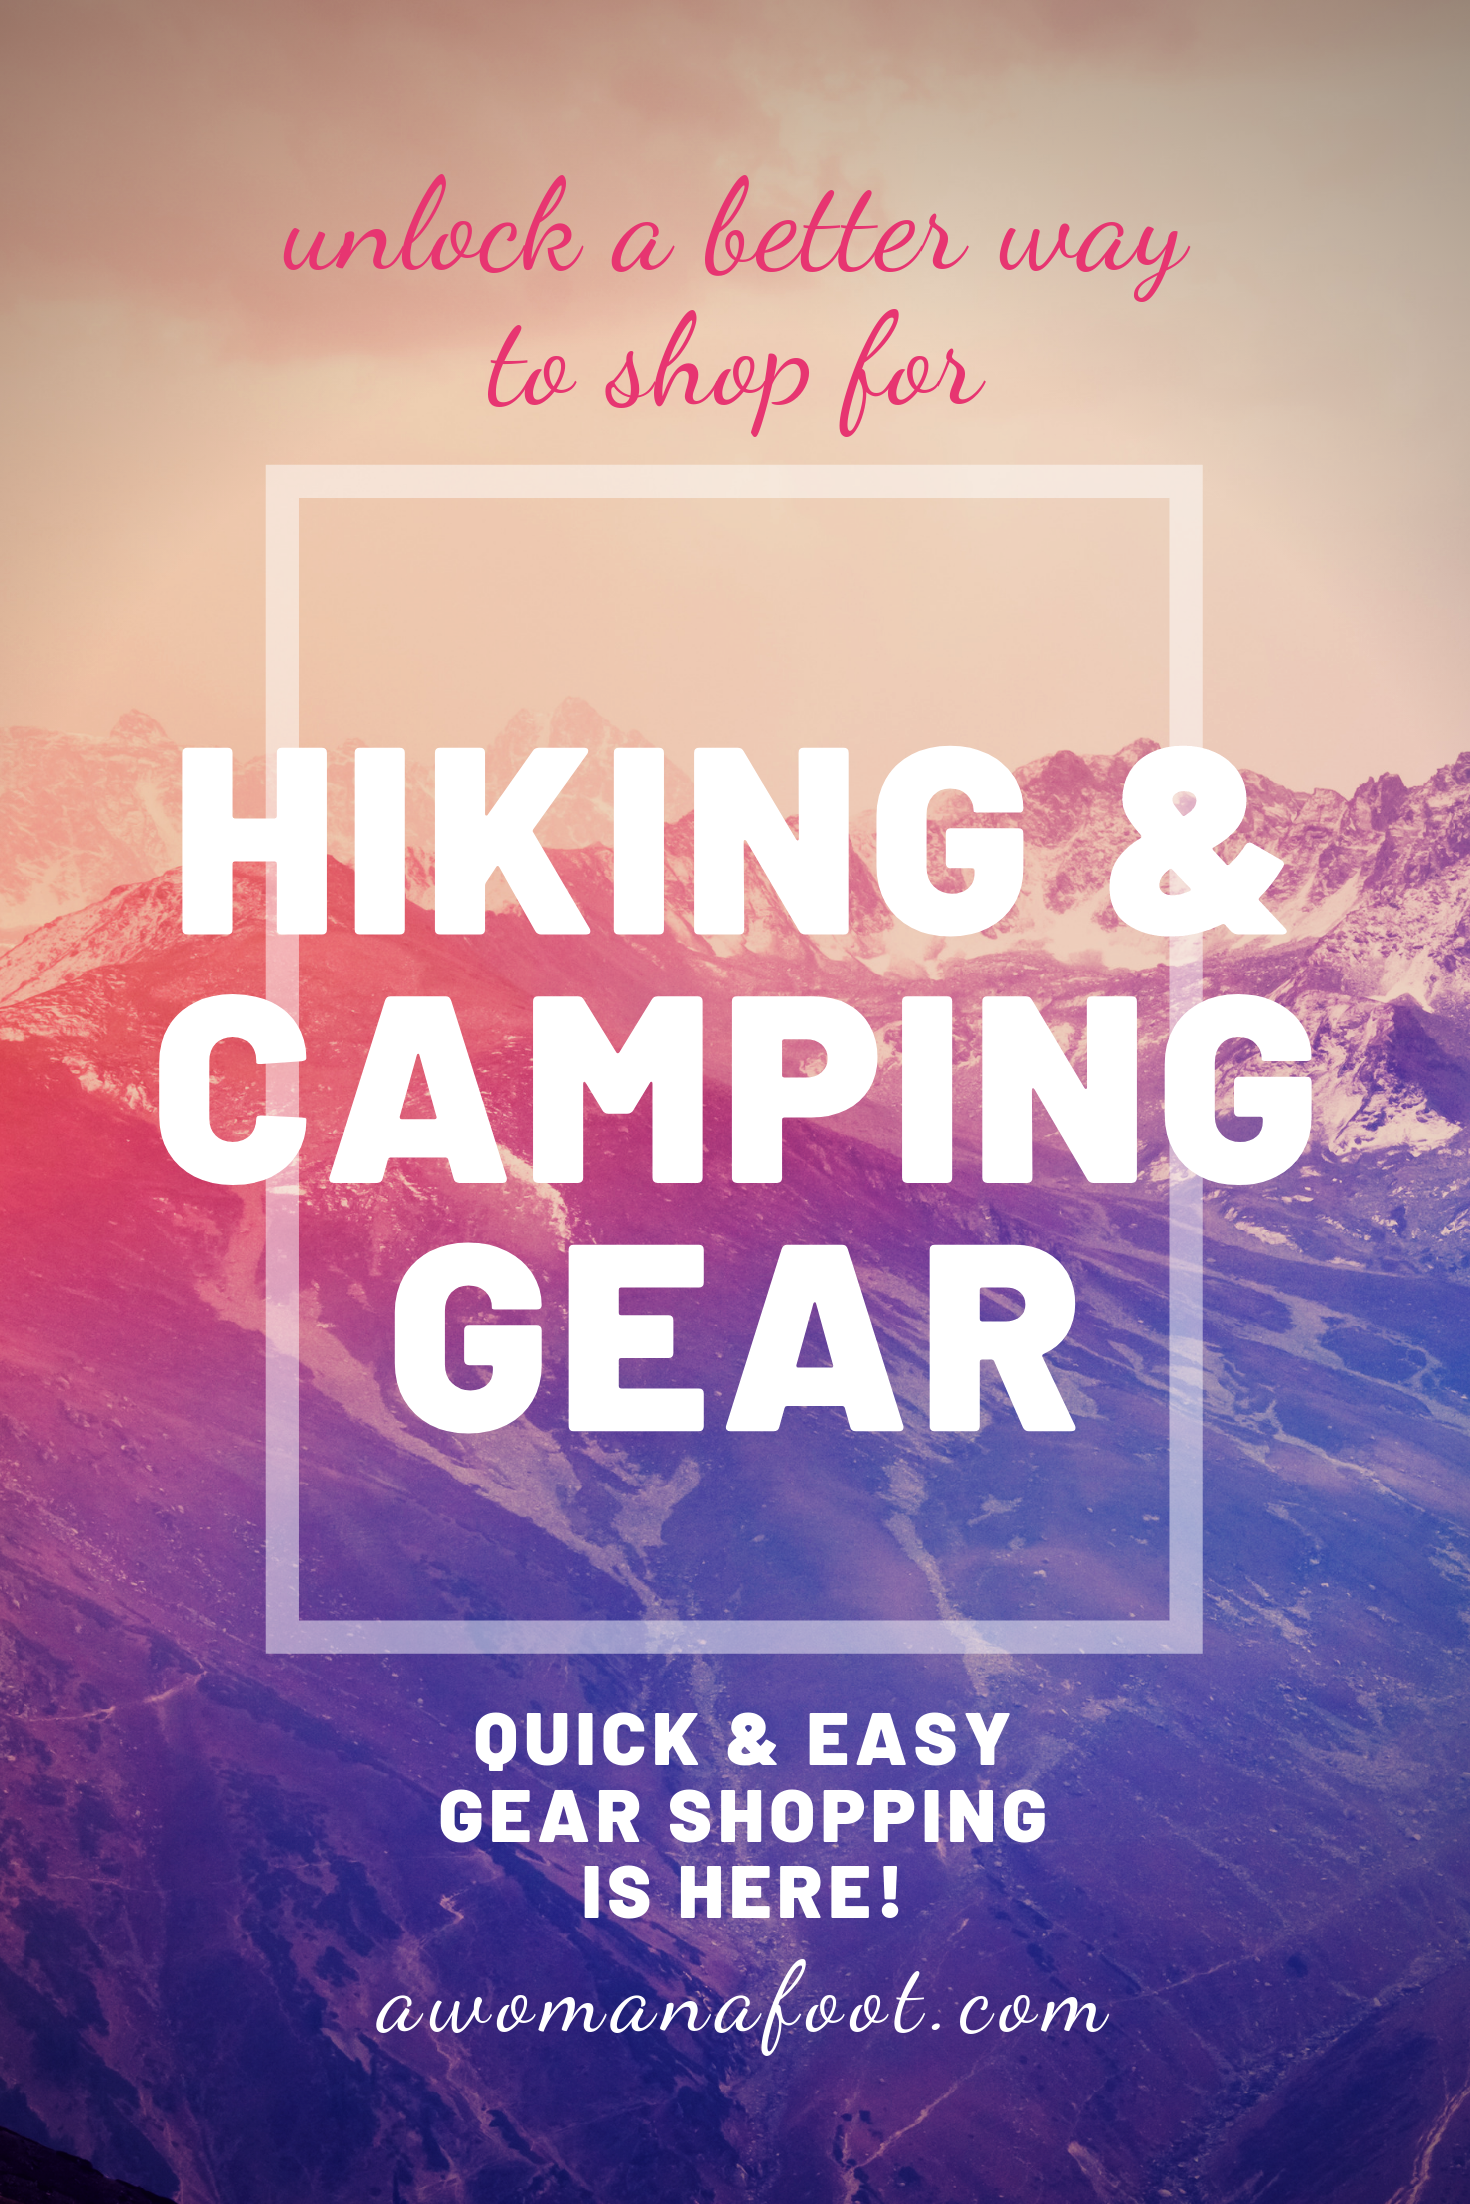 Tired of wasting hours upon hours browsing through Outdoors stores? Not sure what gear is worth your money? I'm here to help! Only what you need and only the best for your hiking & camping adventures - awomanafoot.com | Hiking | Camping | Outdoors | Shopping | Female active attire | Clothing for female hikers | Backpacking | Trekking | Shopping Hacks | #Hiking #Camping #Gear #ShoppingHacks #femalehikers #trekking